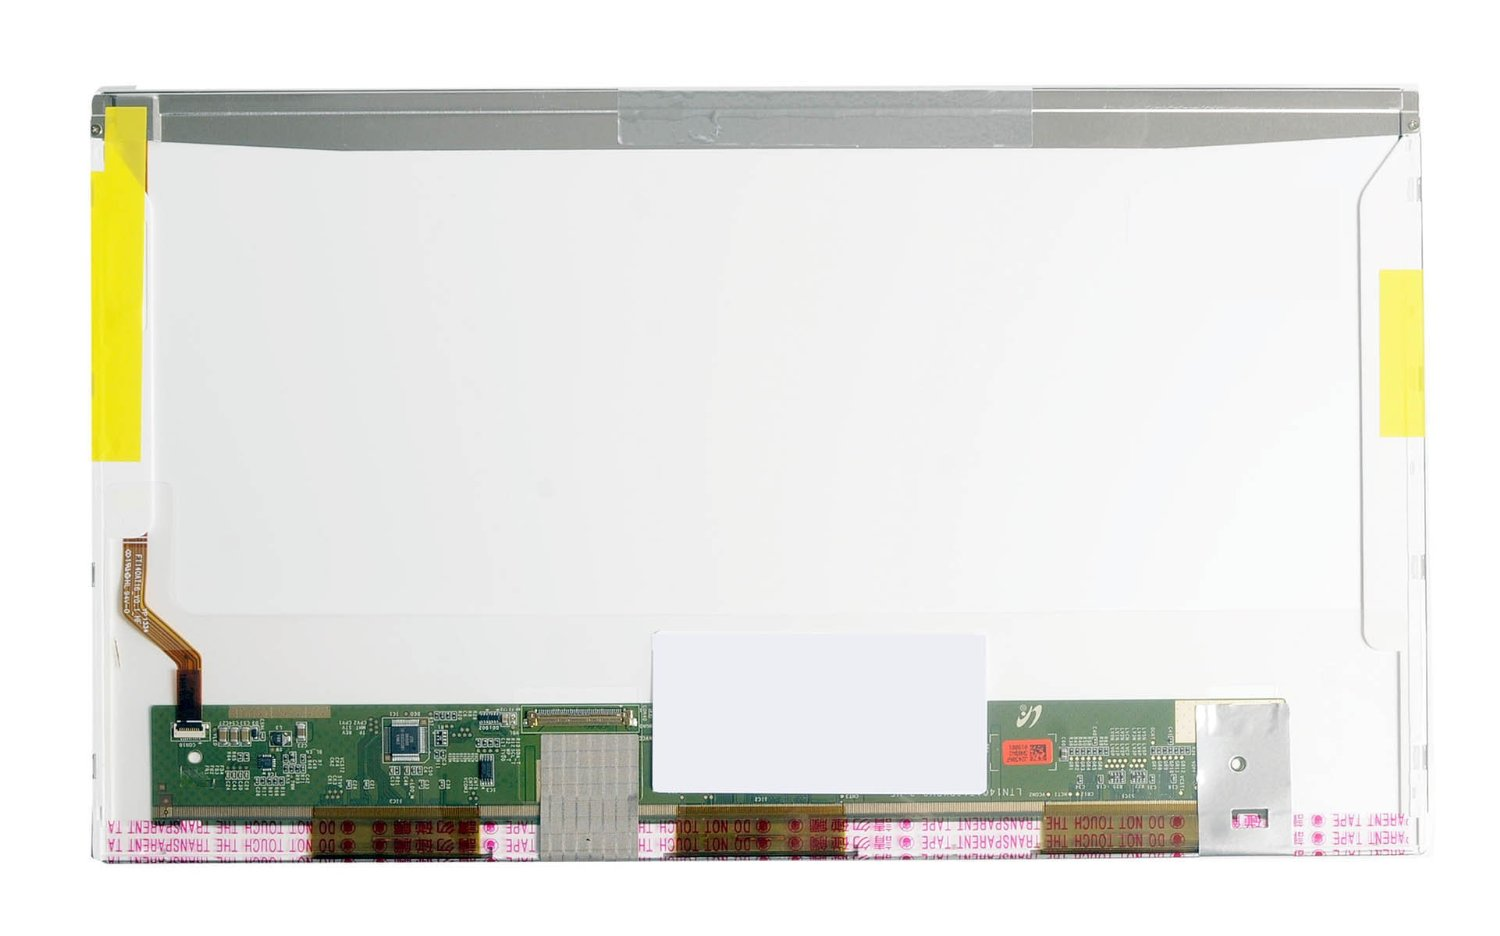 For Toshiba Satellite L645D-S4029 / L645D-S4025 NEW 14.0 LED LCD Screen PanelFor Toshiba Satellite L645D-S4029 / L645D-S4025 NEW 14.0 LED LCD Screen Panel